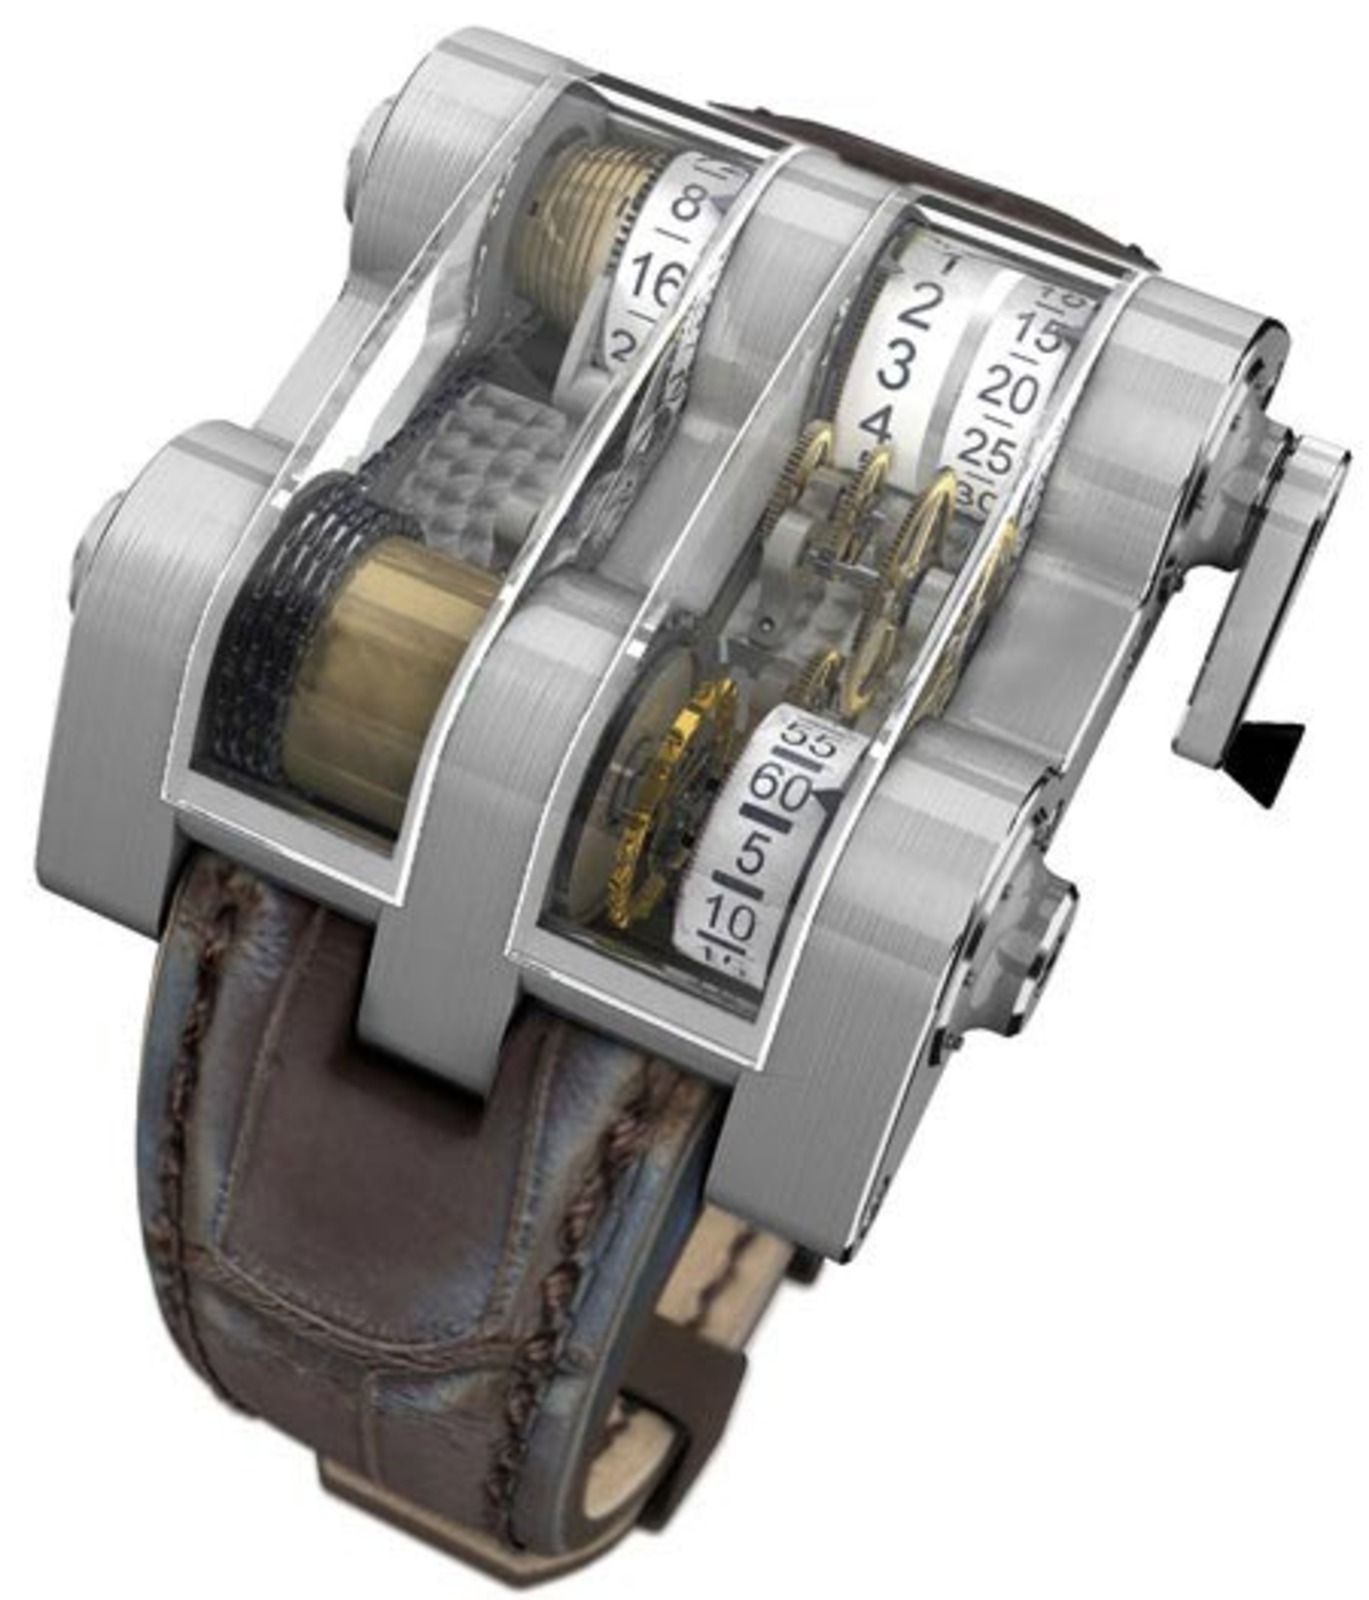 the hong at tourbillon unusual watches kong and cabestan interesting sjx vertical phillips